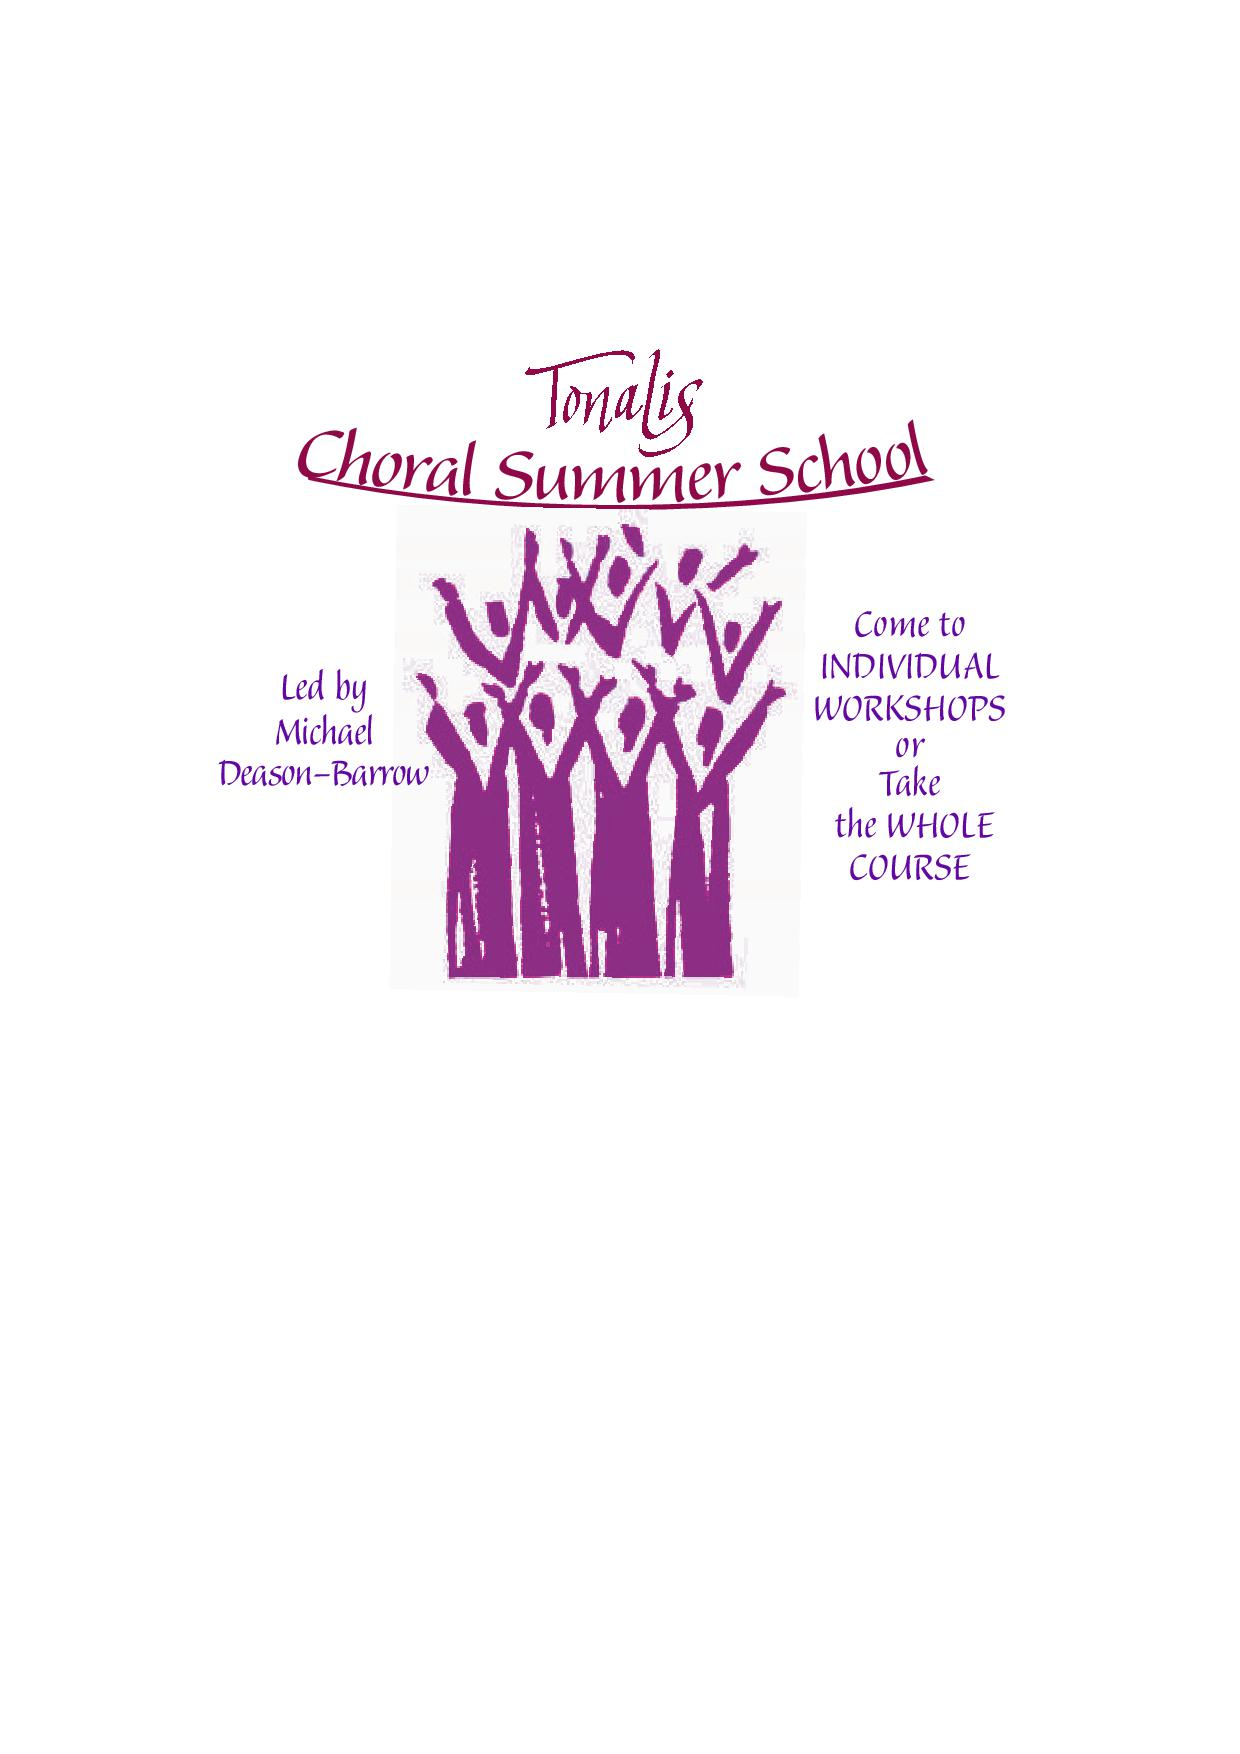 GLOUCESTERSHIRE - Tonalis CHORAL SUMMER SCHOOL: Open Doors into Choral Styles &